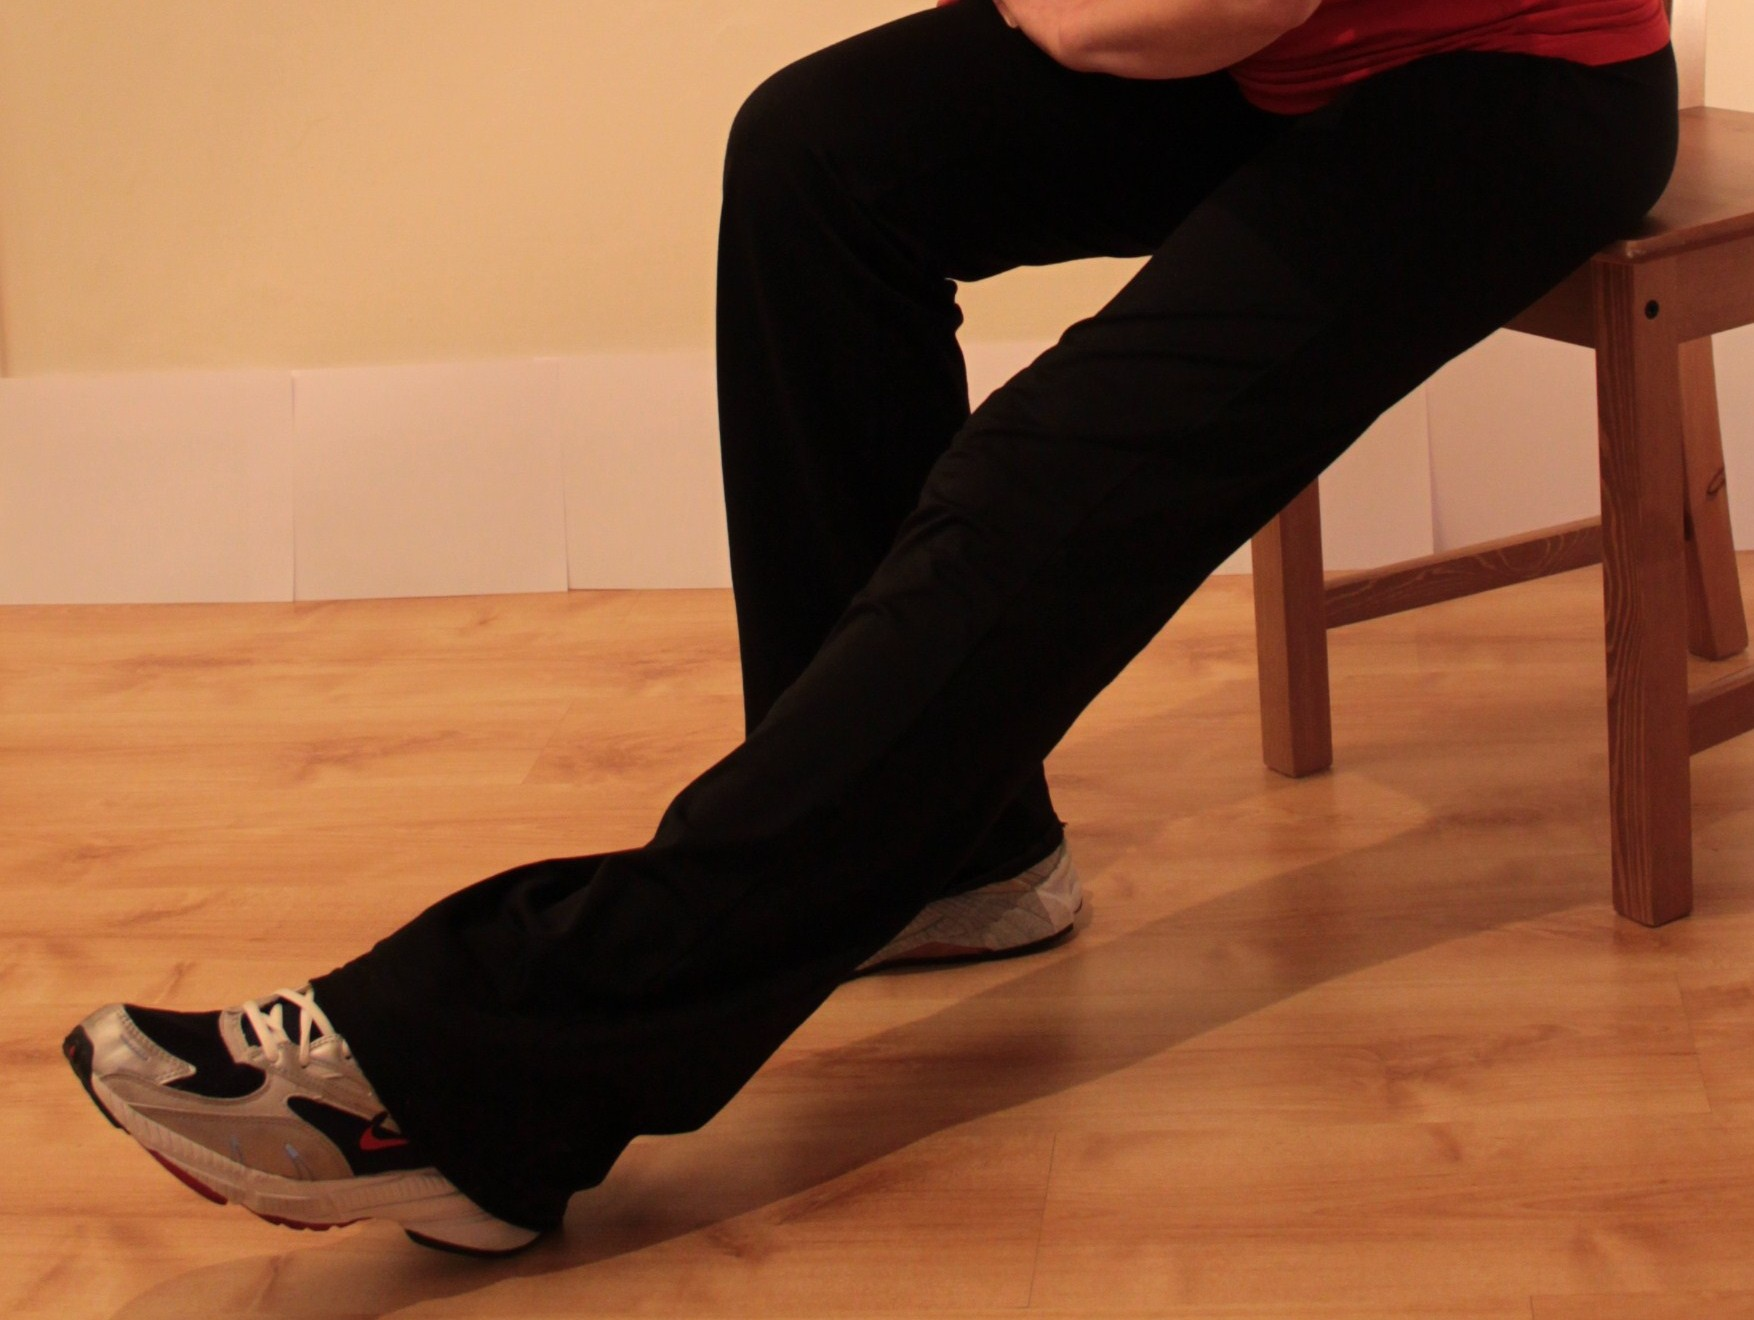 Hamstring stretch, sitting